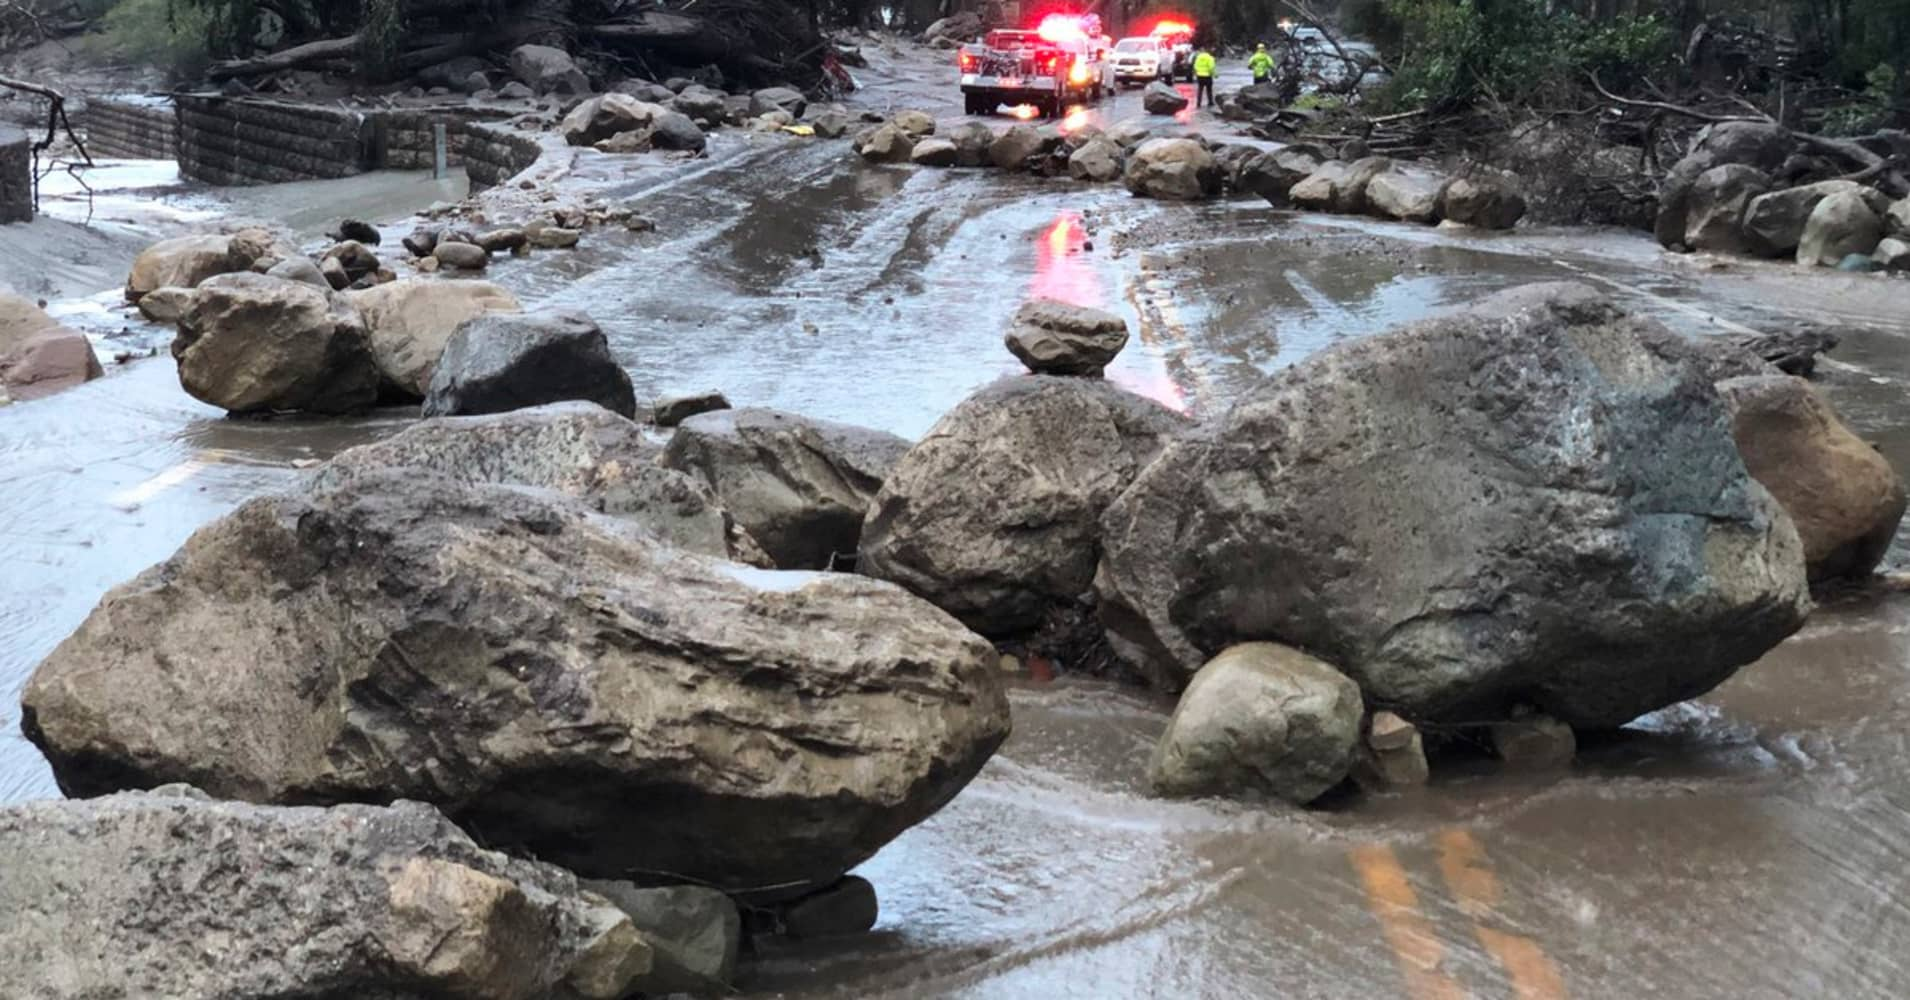 In this photo provided by Santa Barbara County Fire Department, mud and debris flow on the roadway due to heavy rain in Montecito. Calif., Tuesday, Jan. 9, 2018.